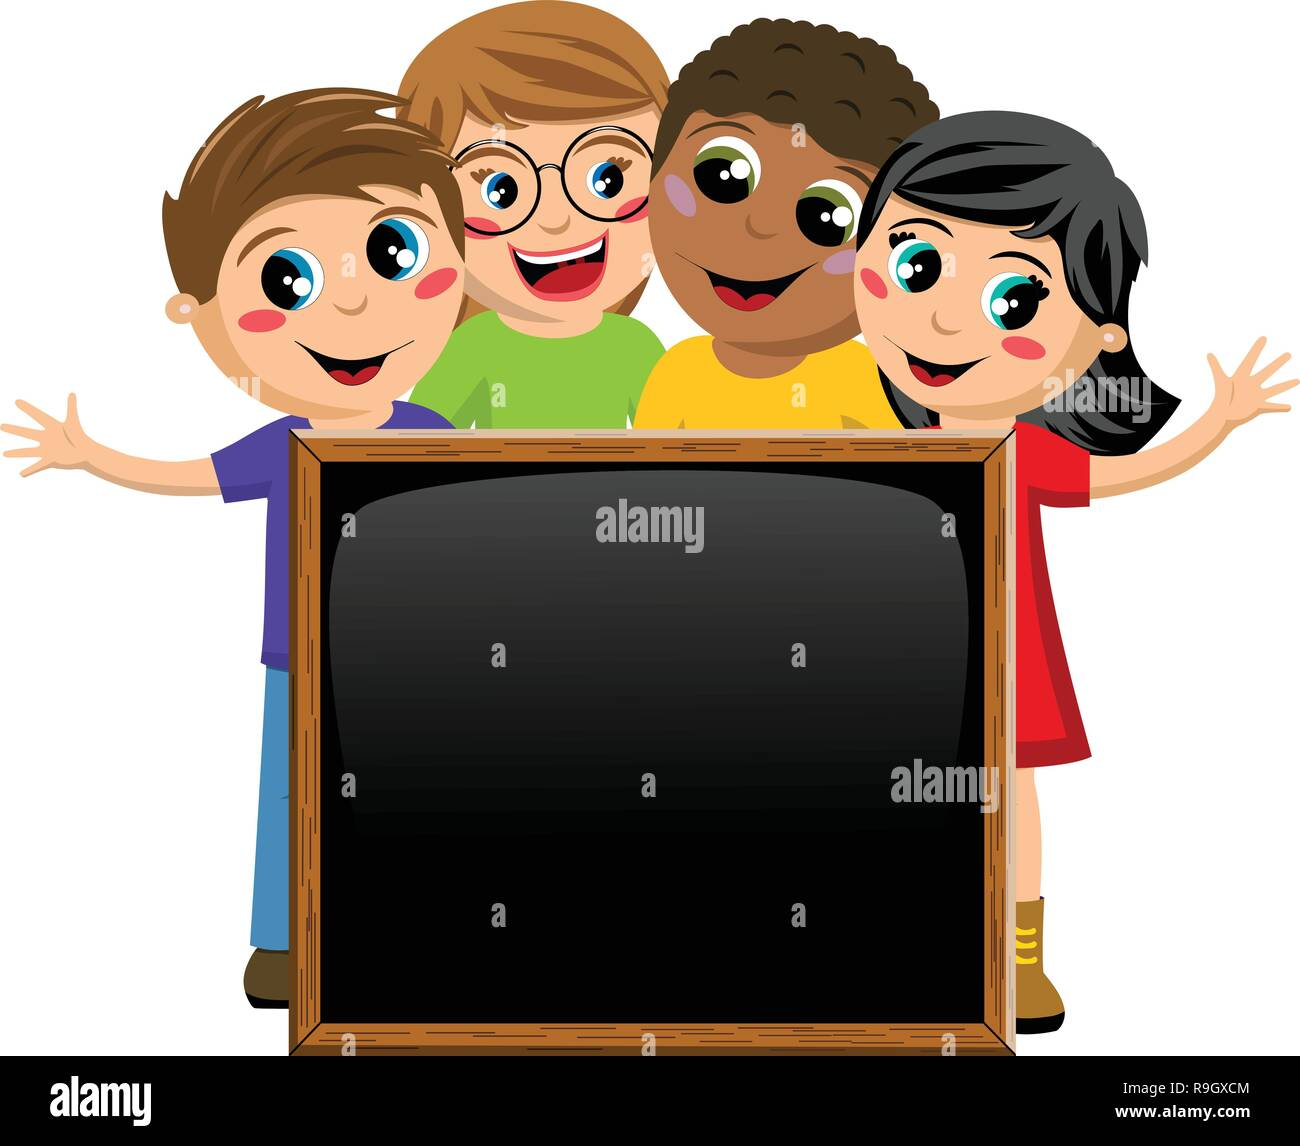 multicultural kids or children behind blank blackboard or chalkboard isolated on white - Stock Vector